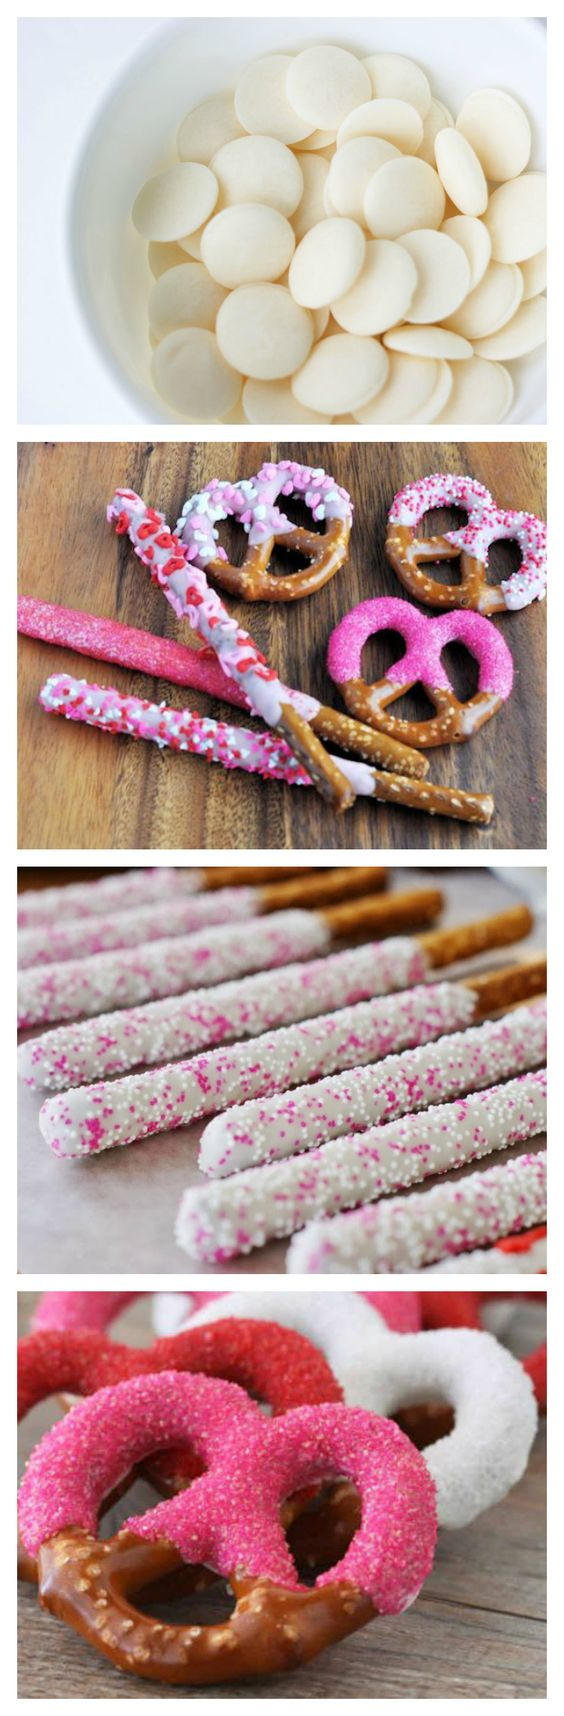 Candy dipped pretzel's for Valentine's Day. <3